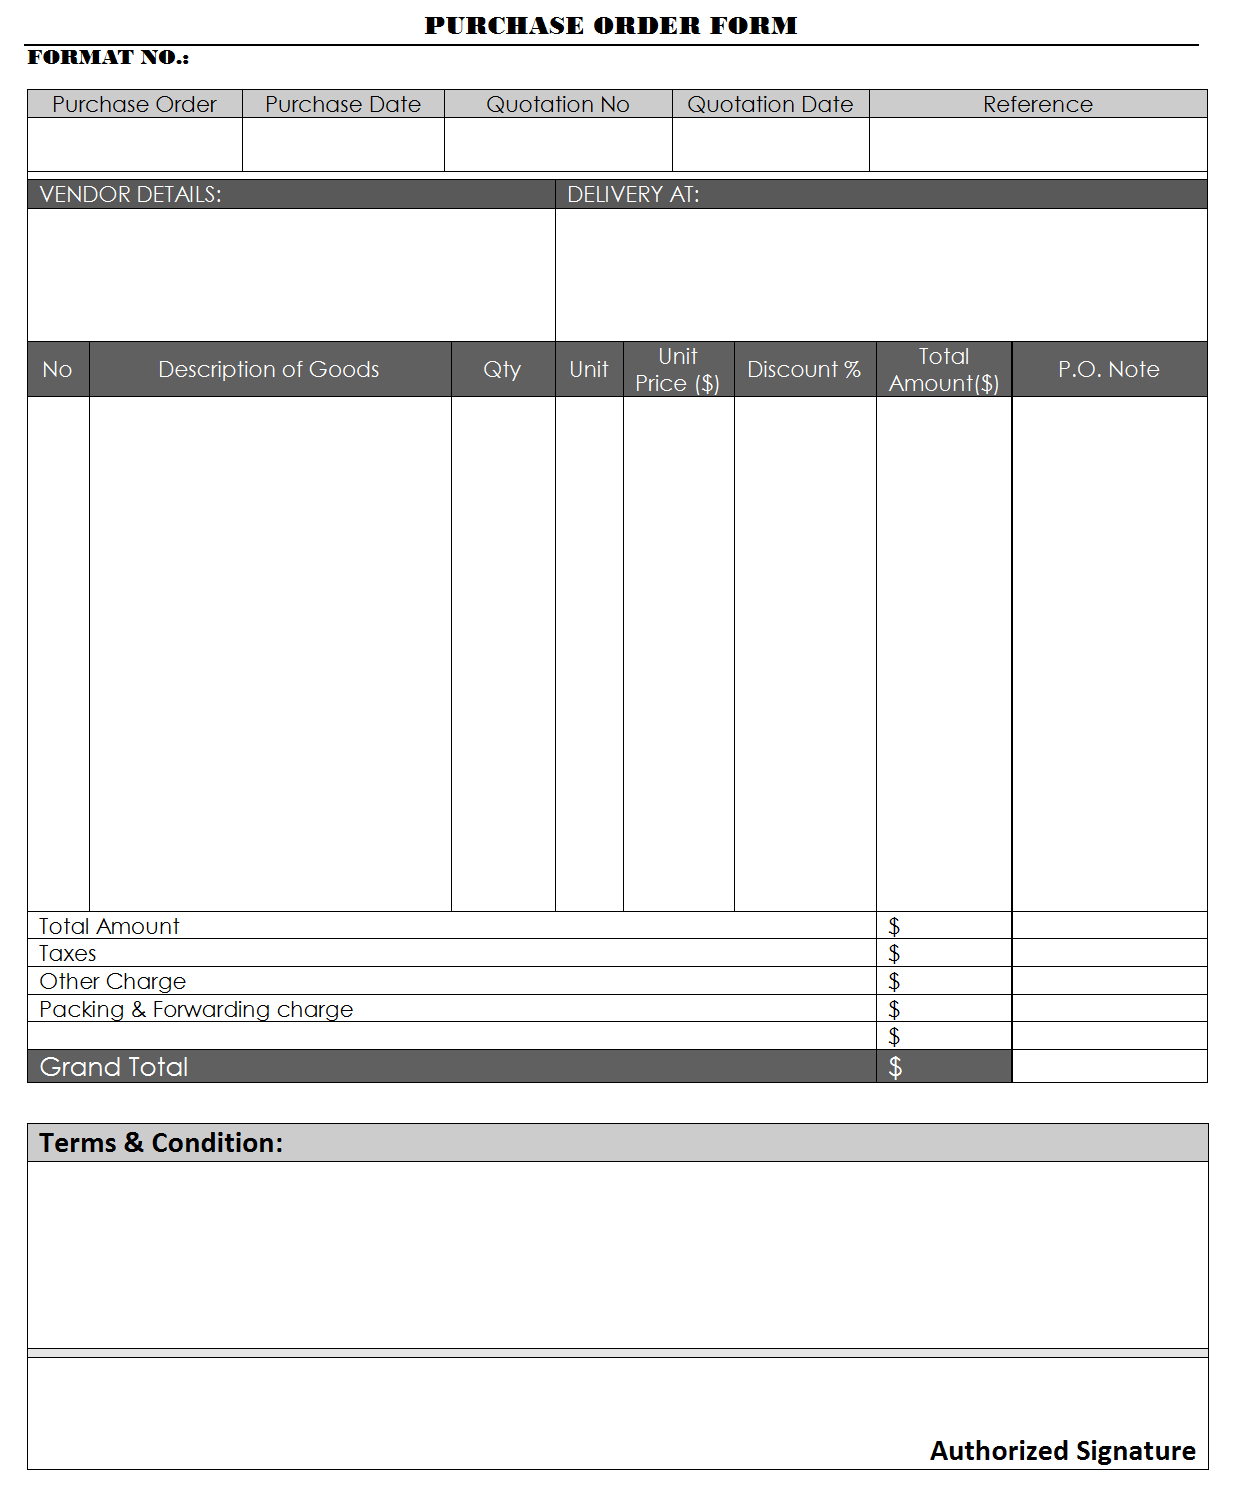 Purchase Order Form  Format Of Purchase Order Form